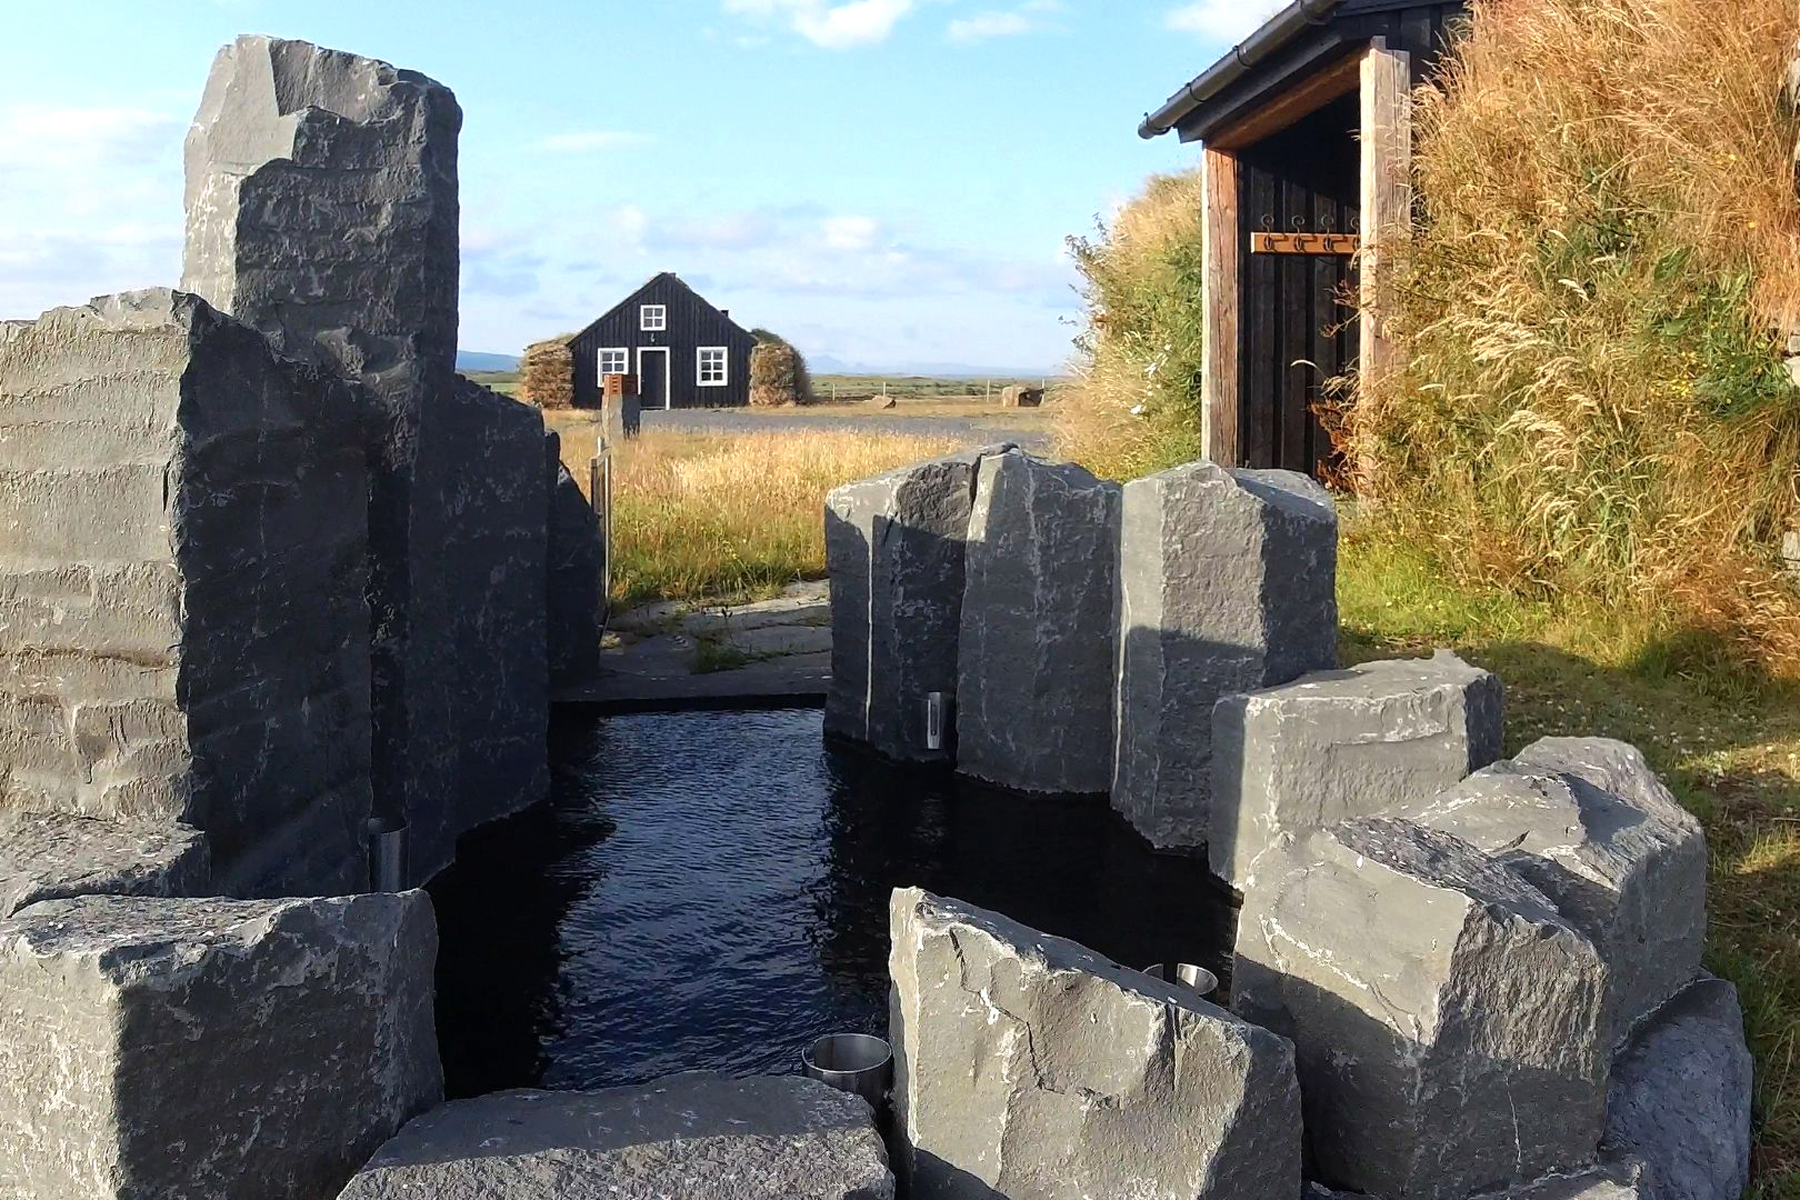 Landscape of water feature and cottage in Iceland